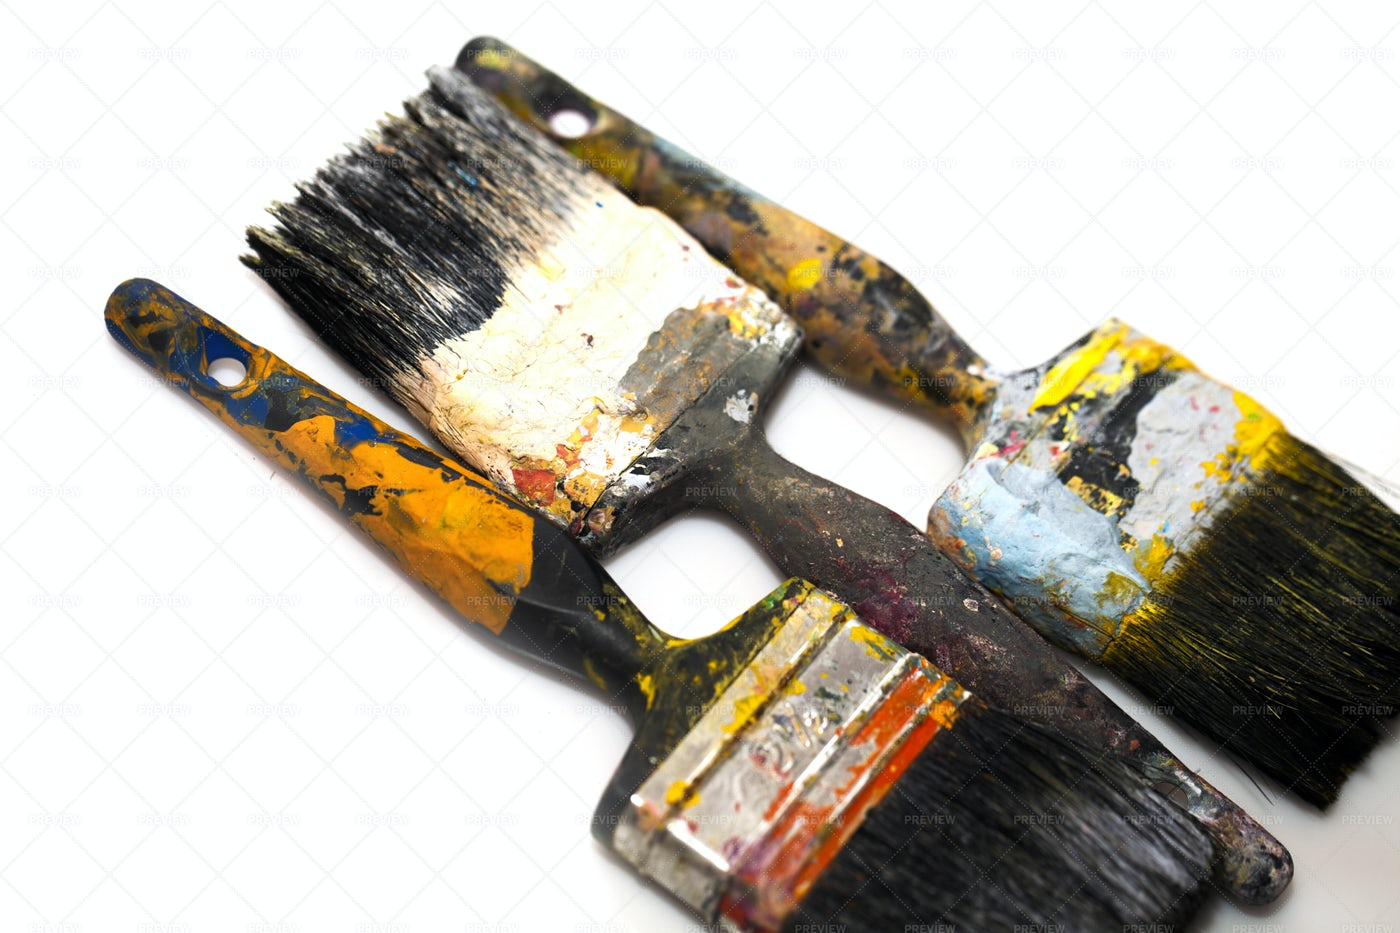 Brushes Stained With Paint: Stock Photos